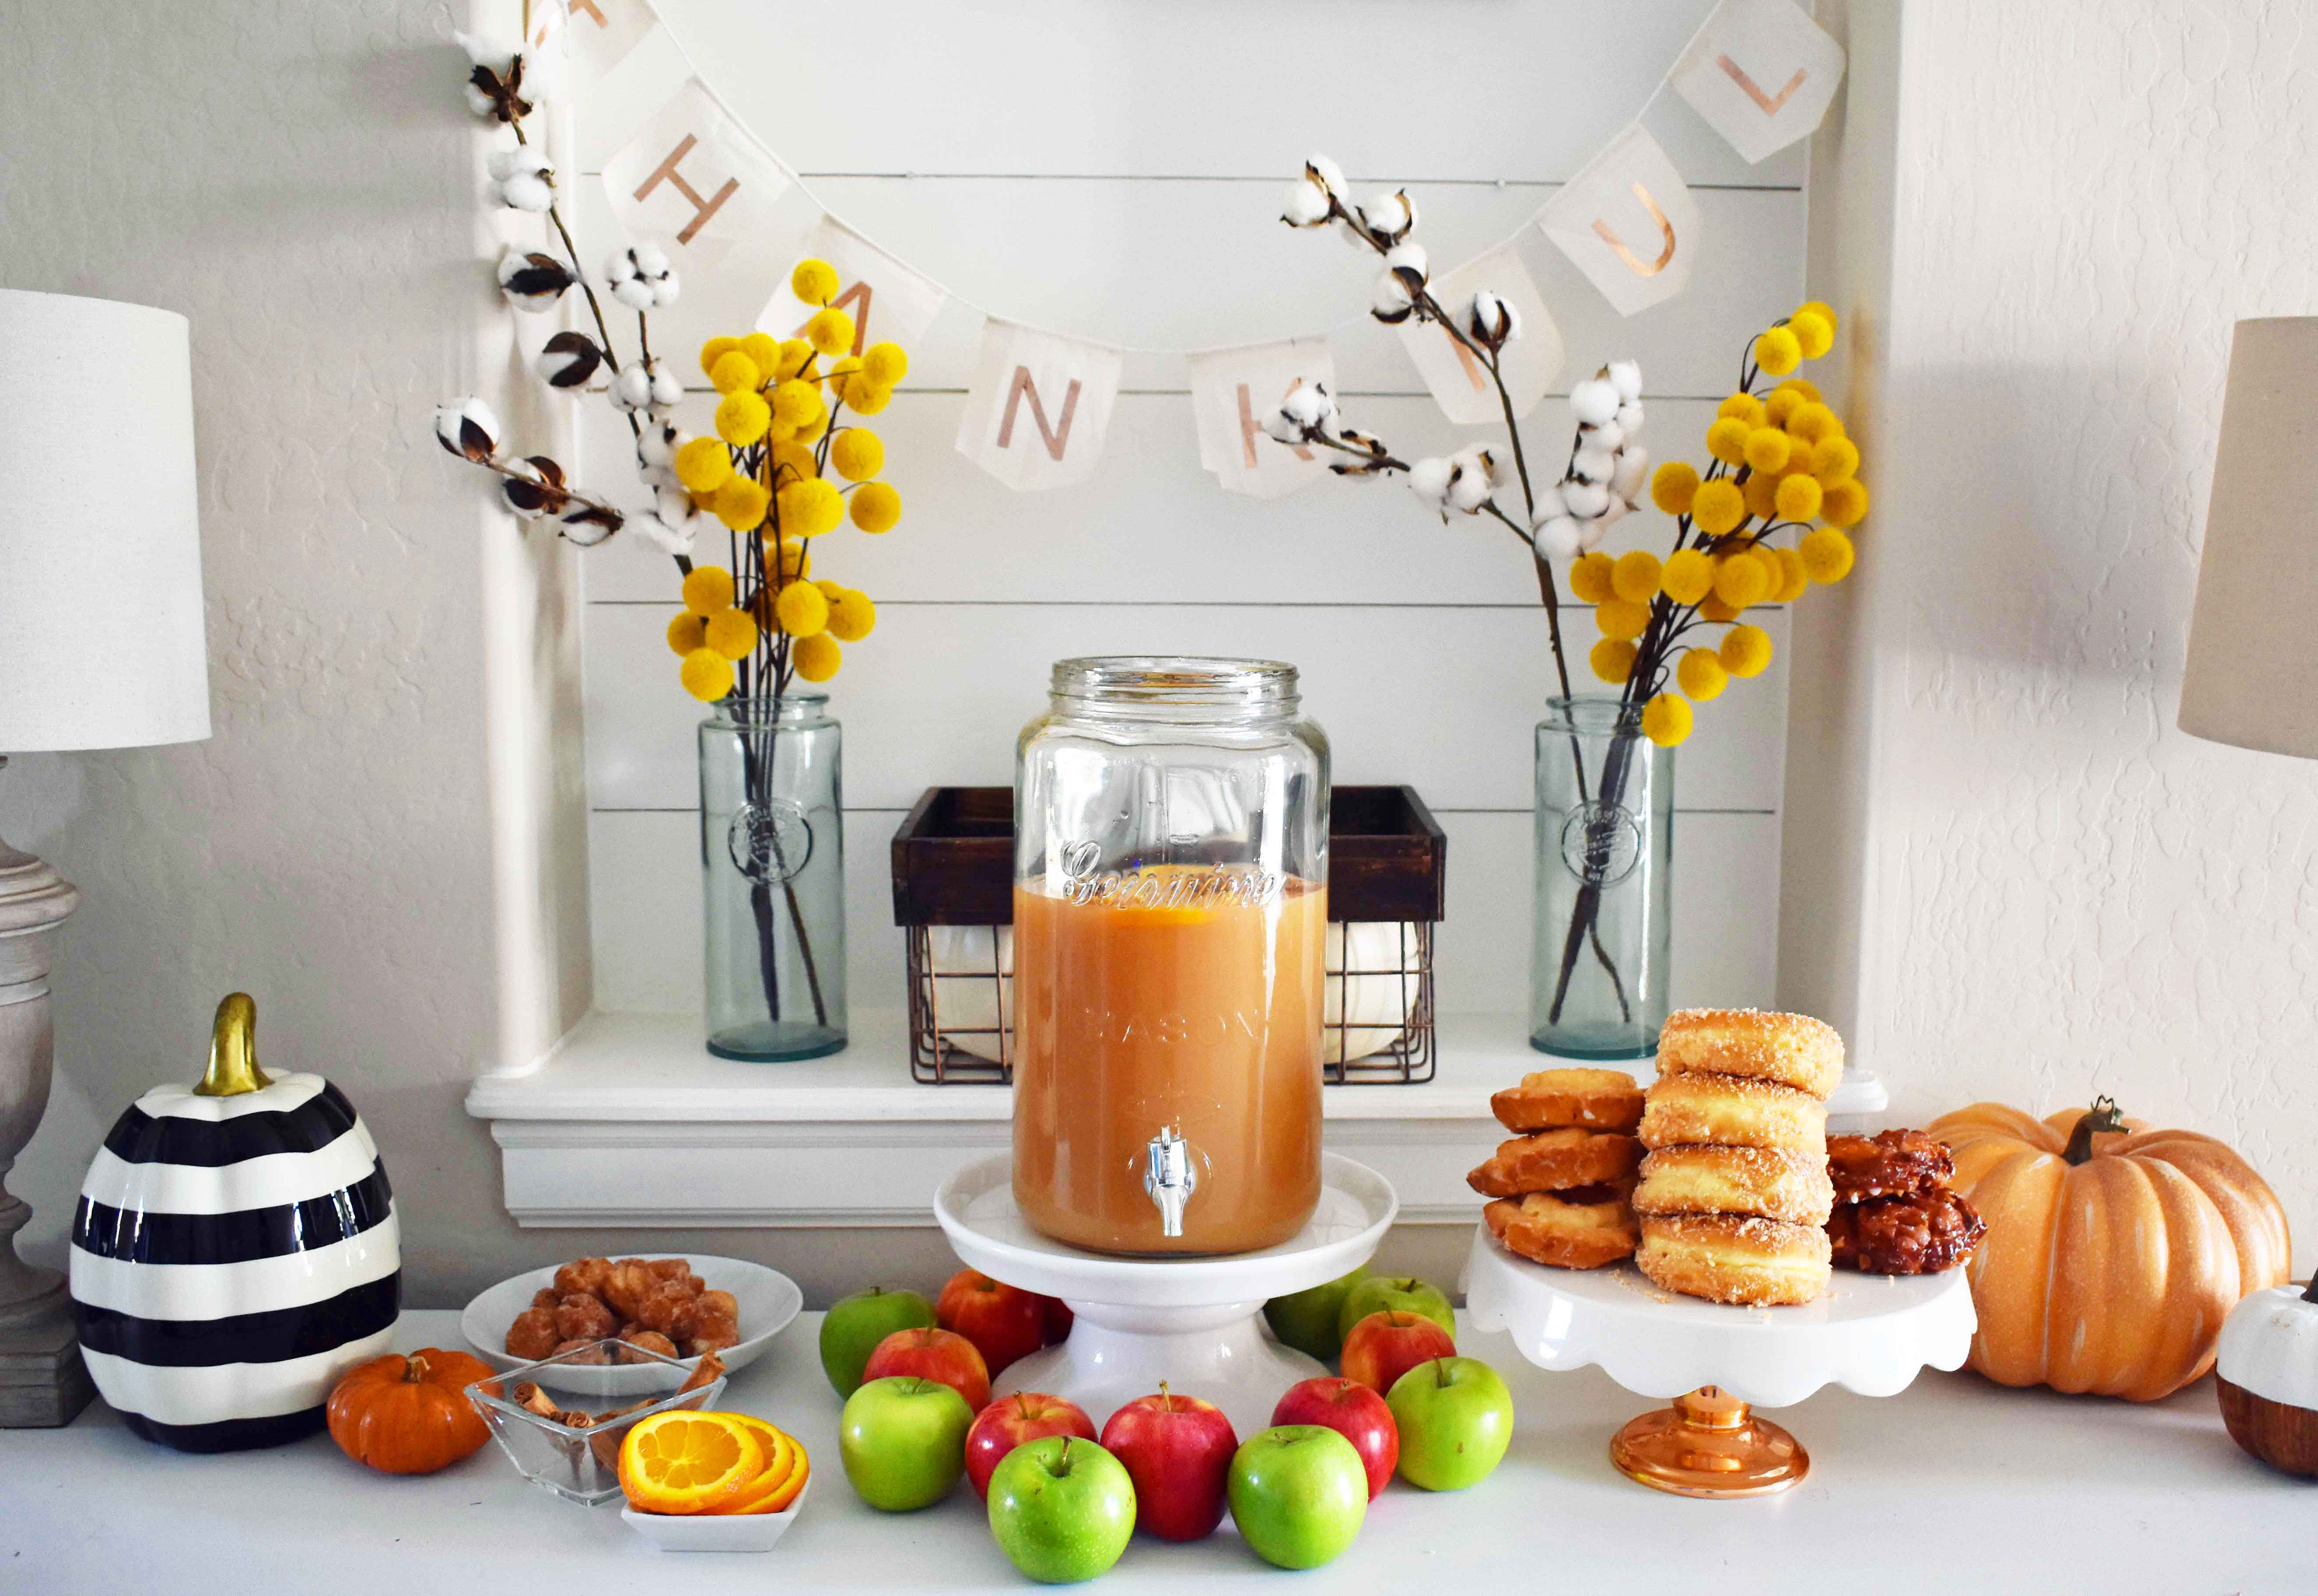 How to make a DIY Hot Apple Cider Bar to celebrate Fall. A simple, easy way to serve hot apple cider and a homemade apple fritters recipe. A hot apple cider bar with all of the toppings. www.modernhoney.com